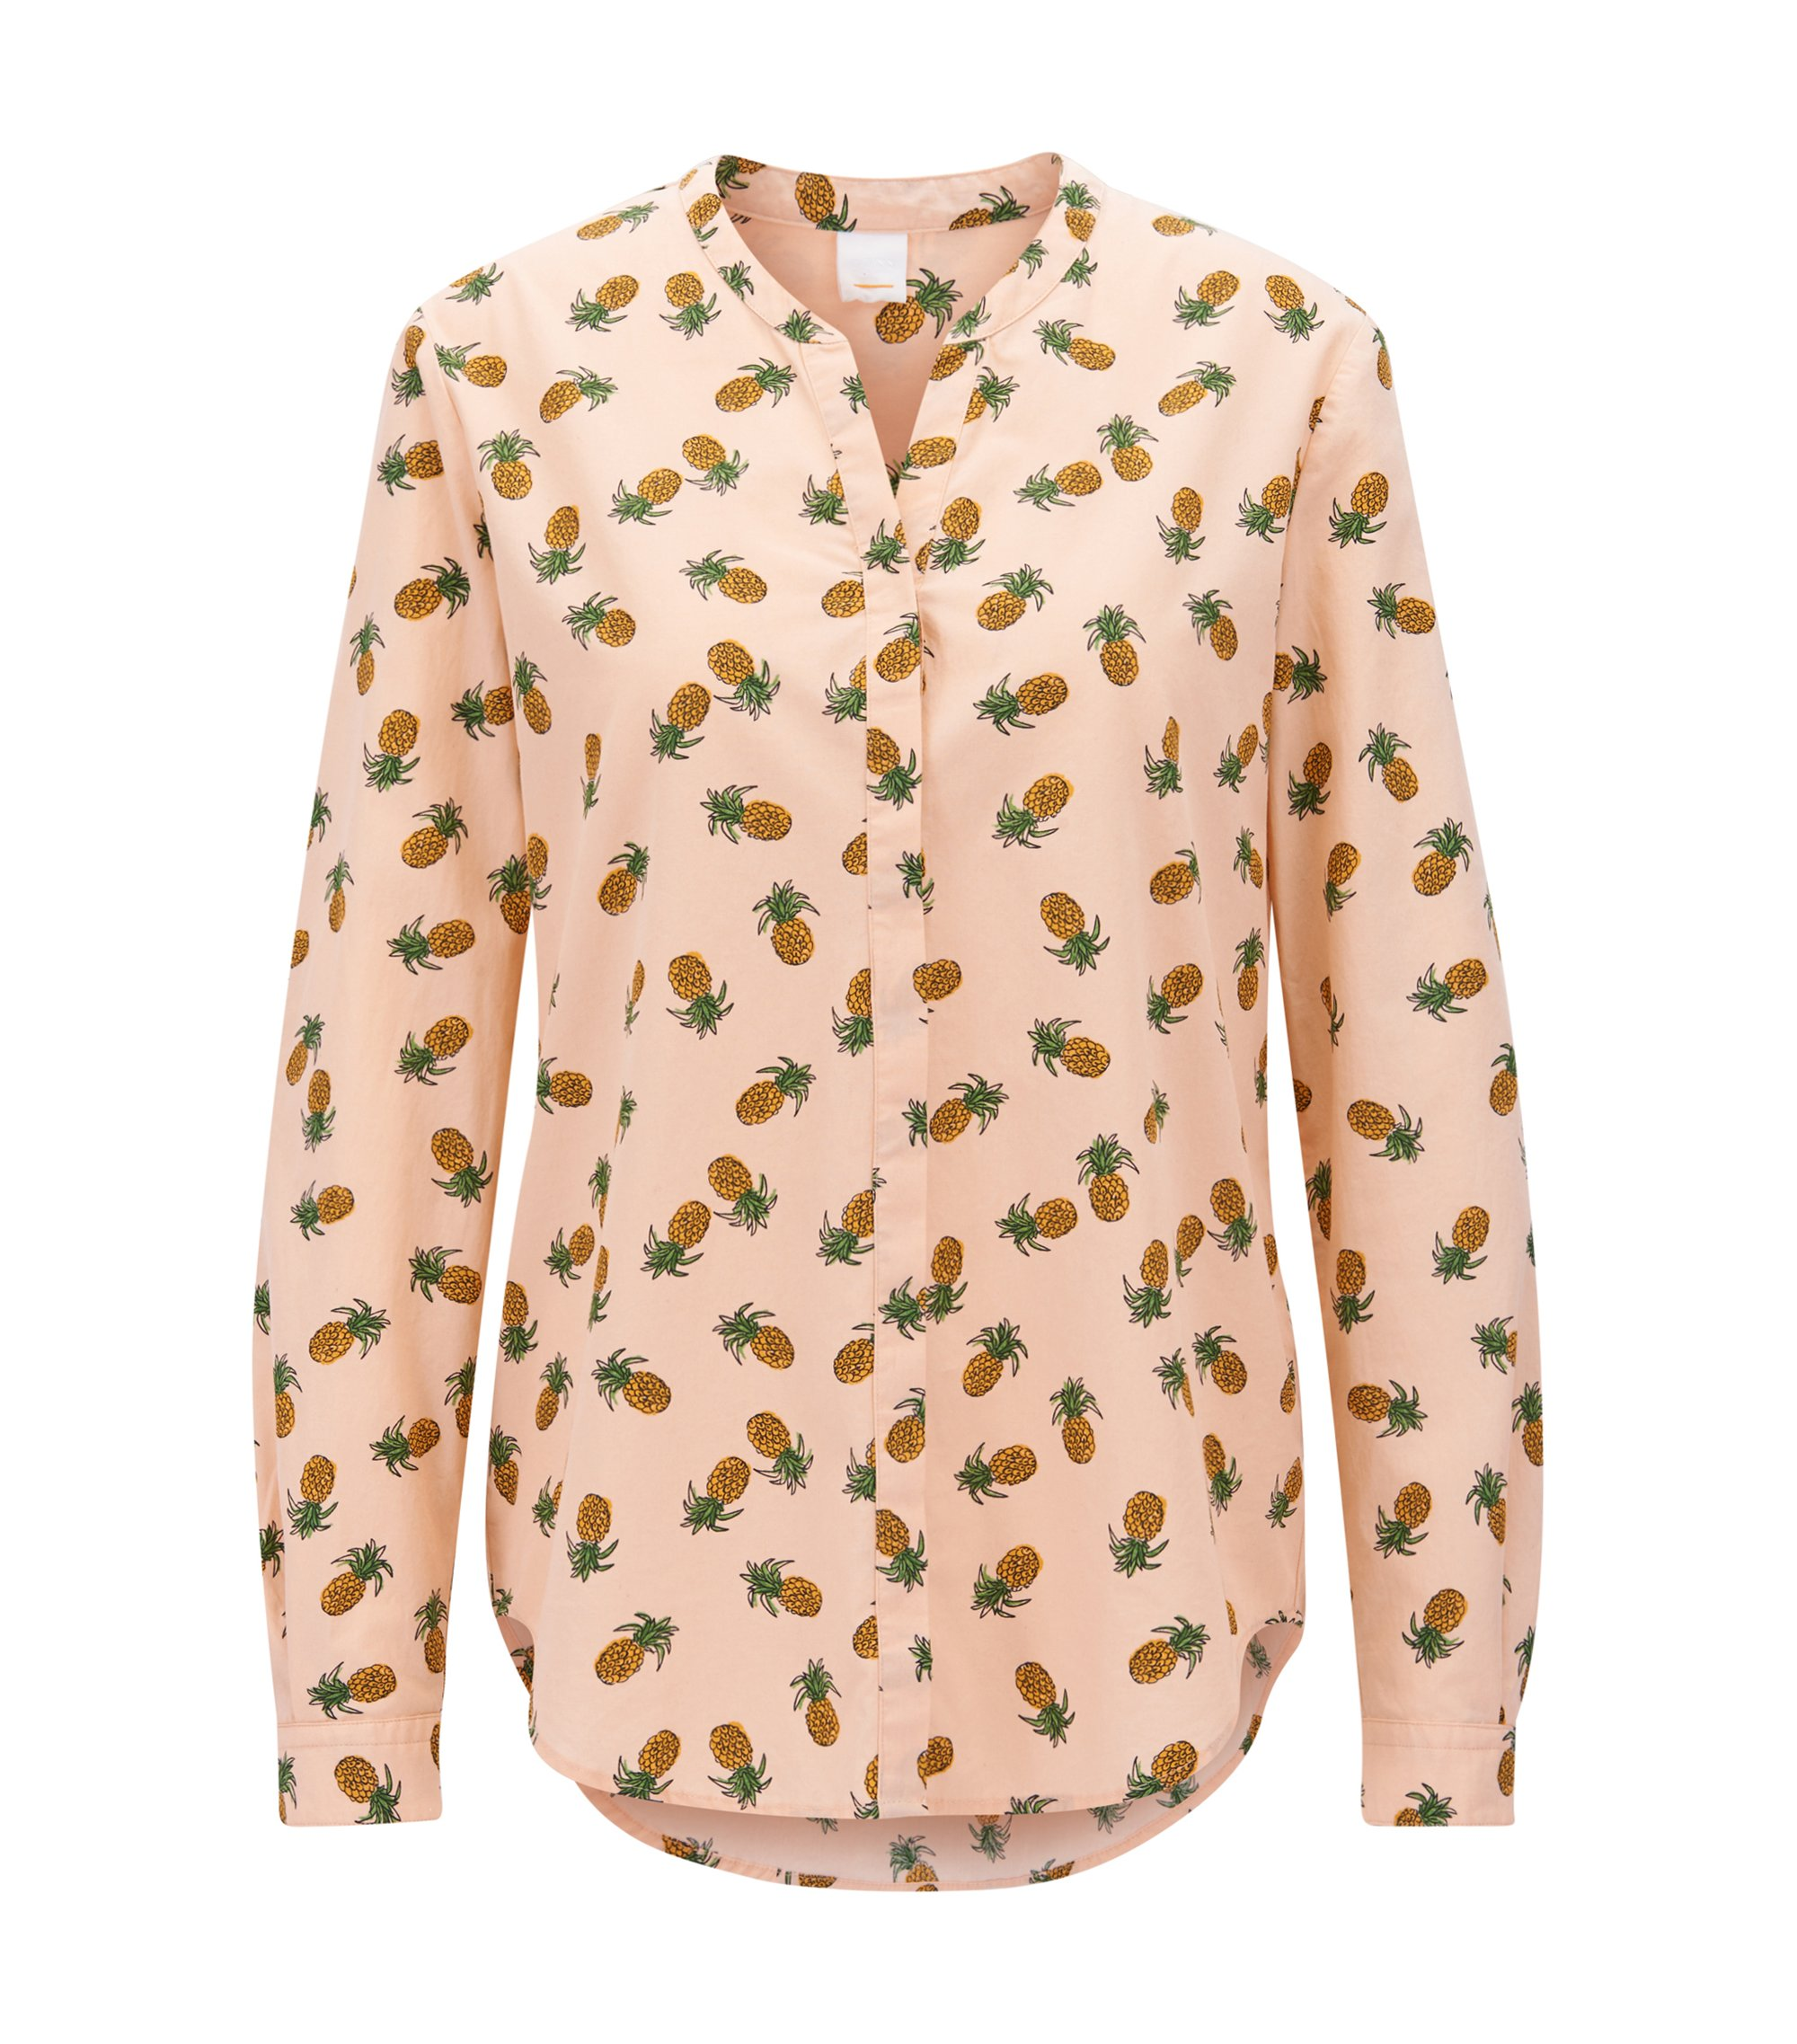 Relaxed-Fit Bluse aus Baumwoll-Canvas mit Ananas-Print, Hellrosa